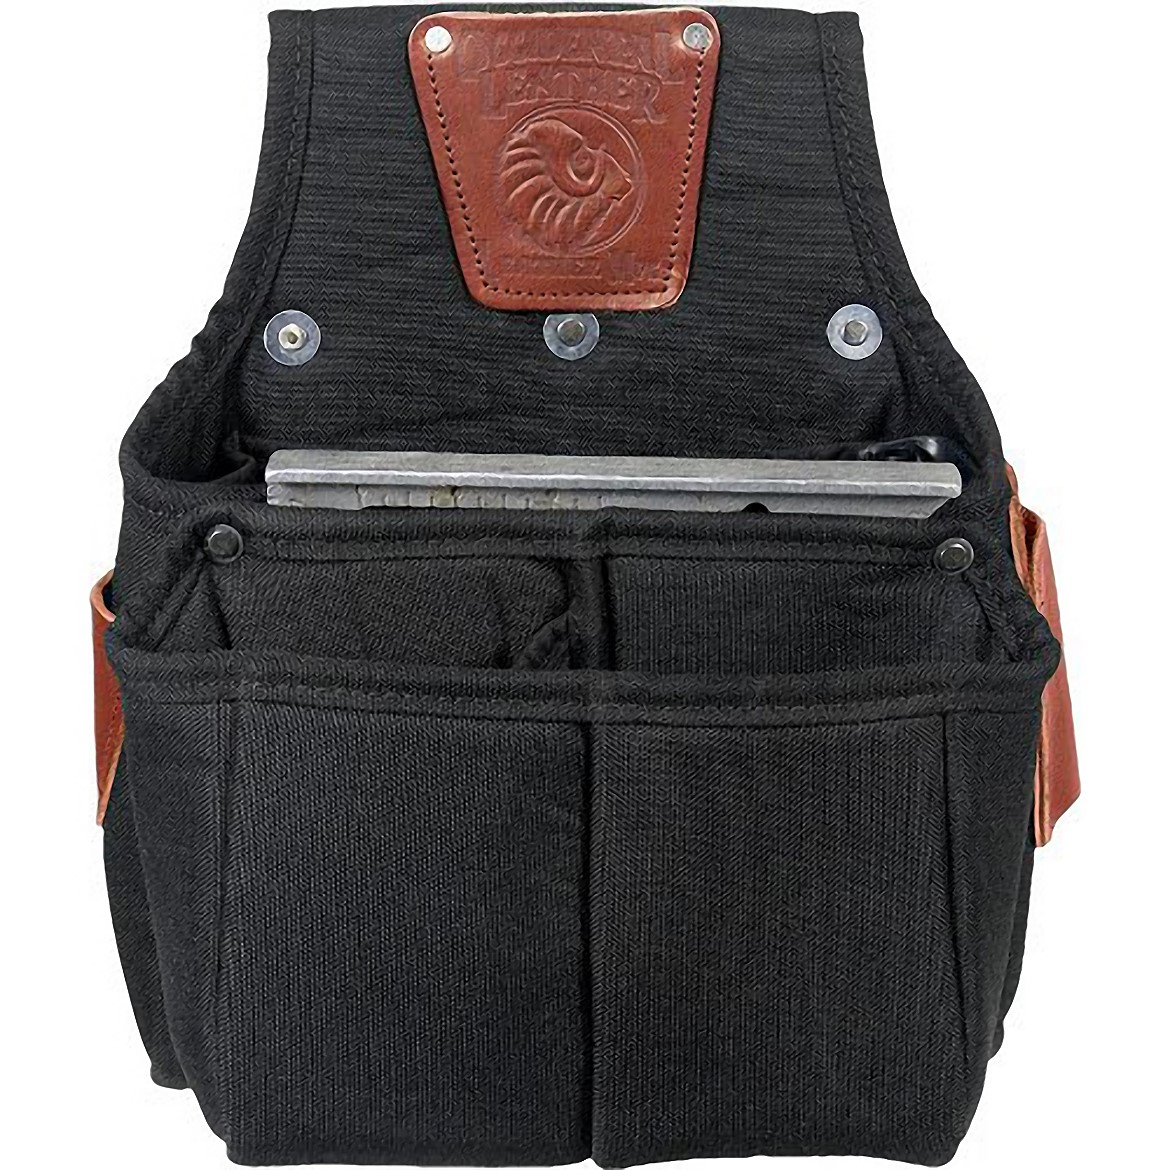 Occidental Leather 9520 Carpenter Finisher Finishing Fastener Tool Bag Pouch Ebay